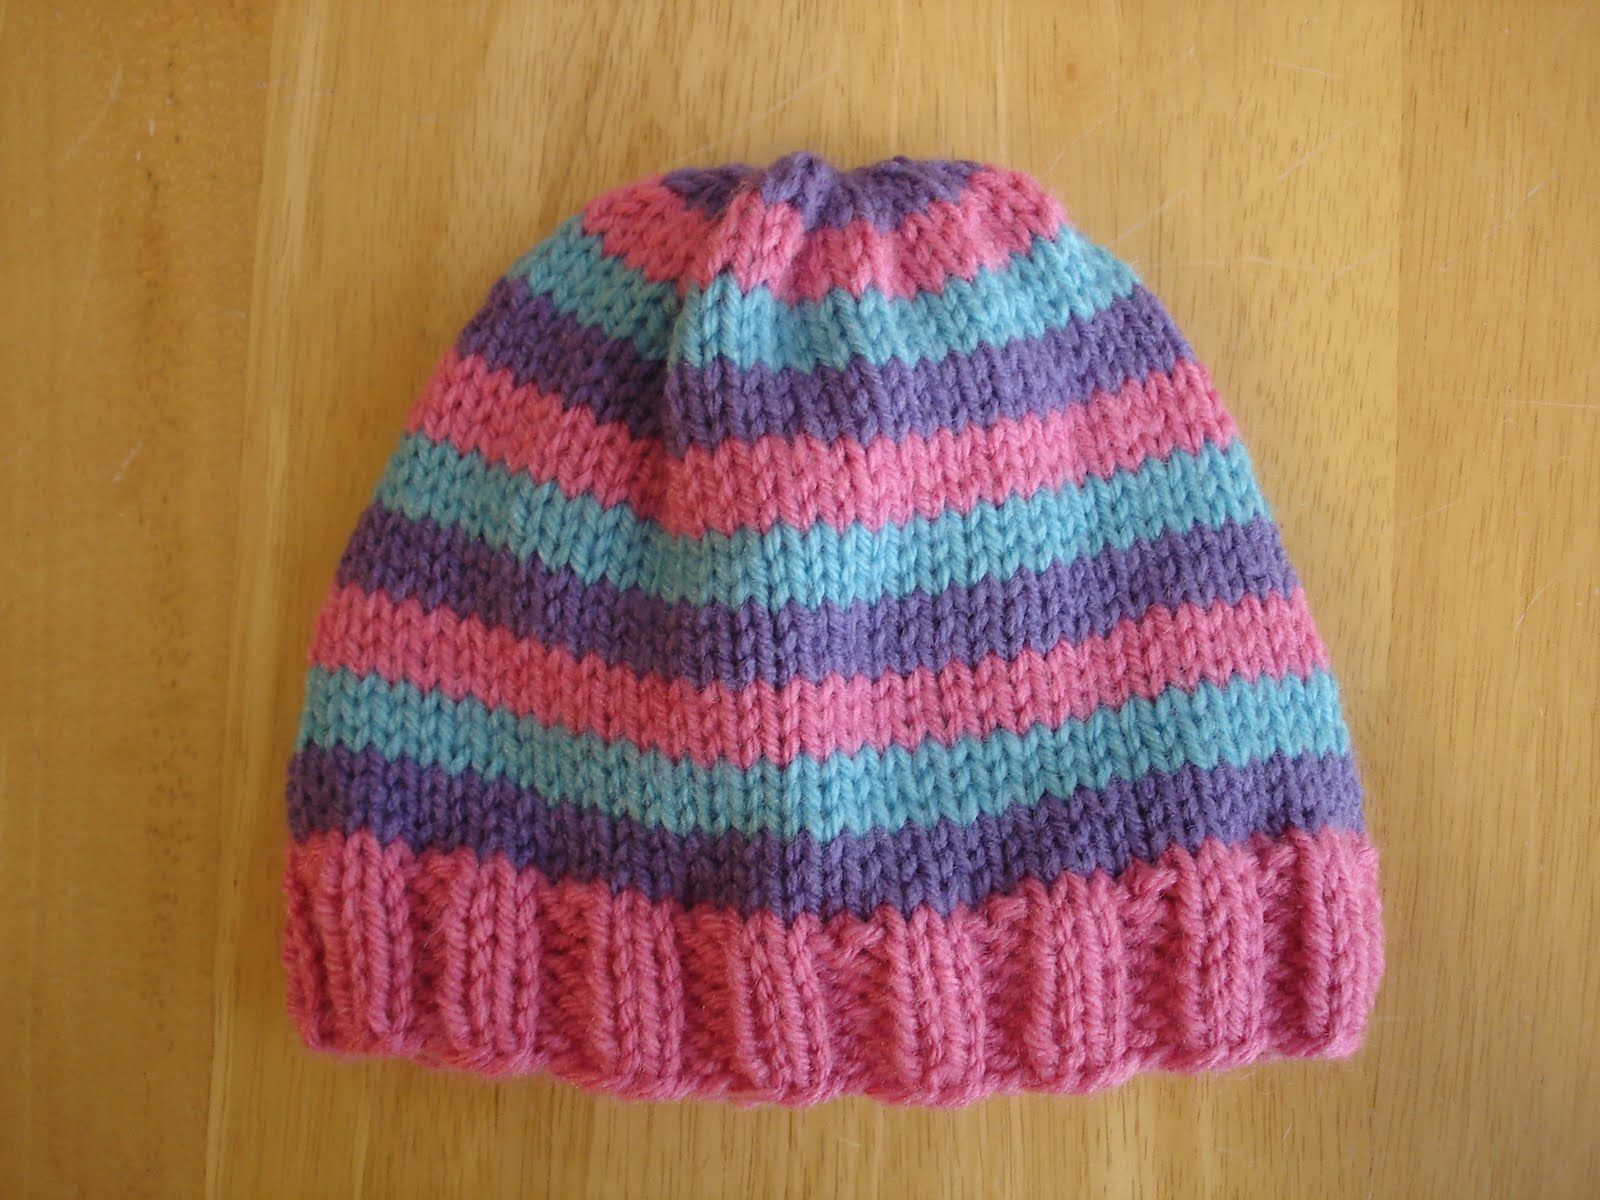 529ed4cfa6a Adventures in Stitching  Free Knitting Pattern...Super Pink Toddler Hat!